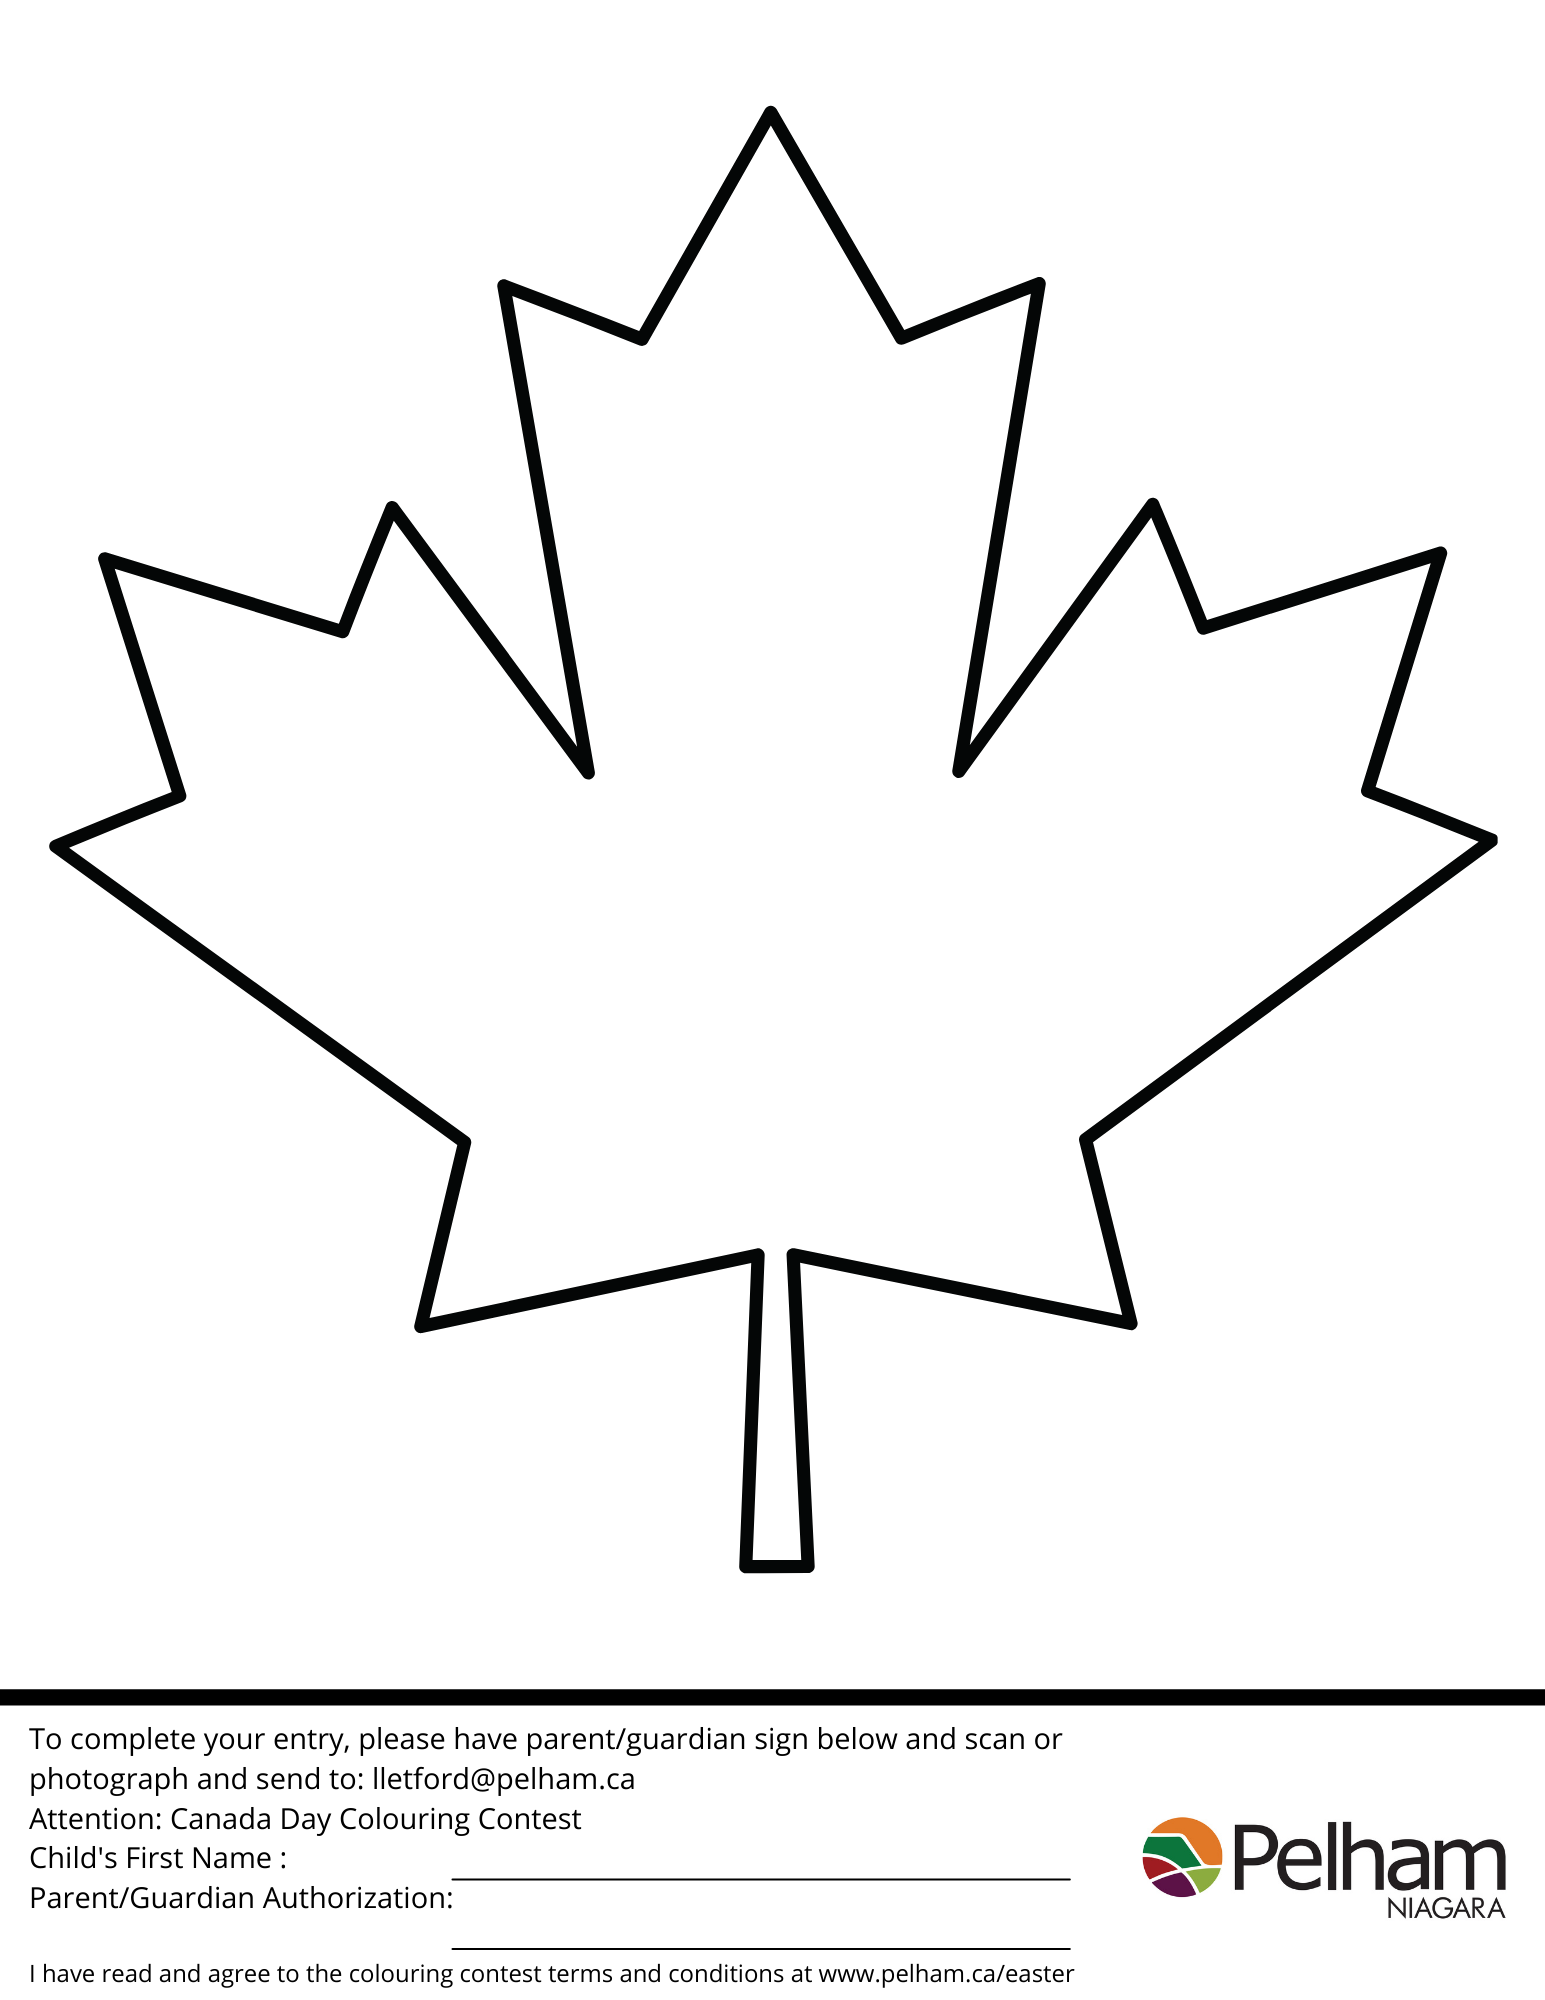 maple leaf image for colouring contest